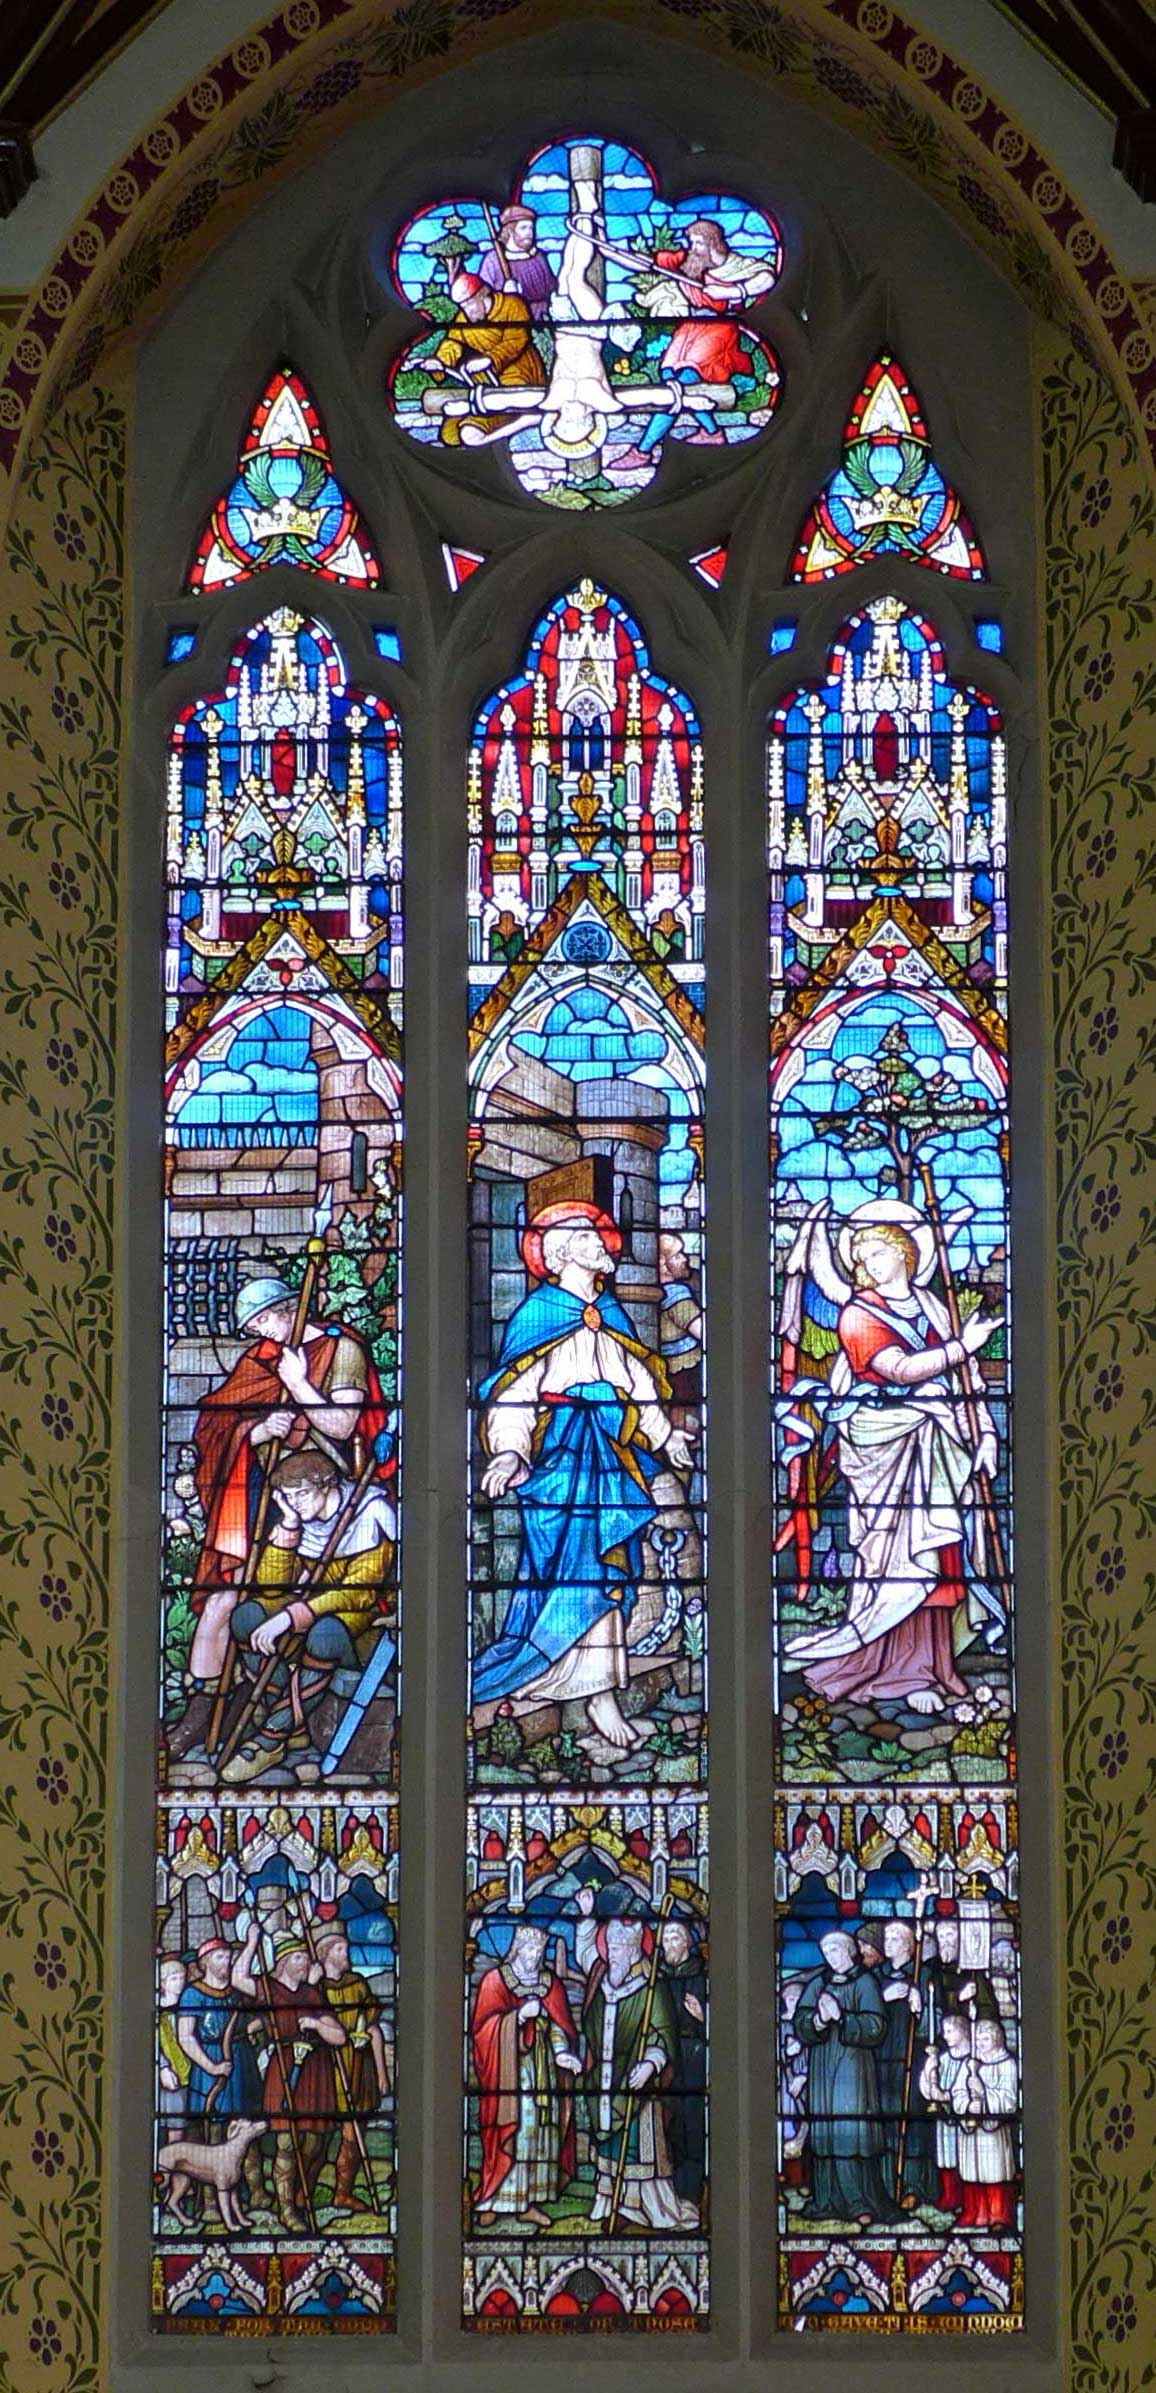 St Peter's Hall, stained glass windows inside church